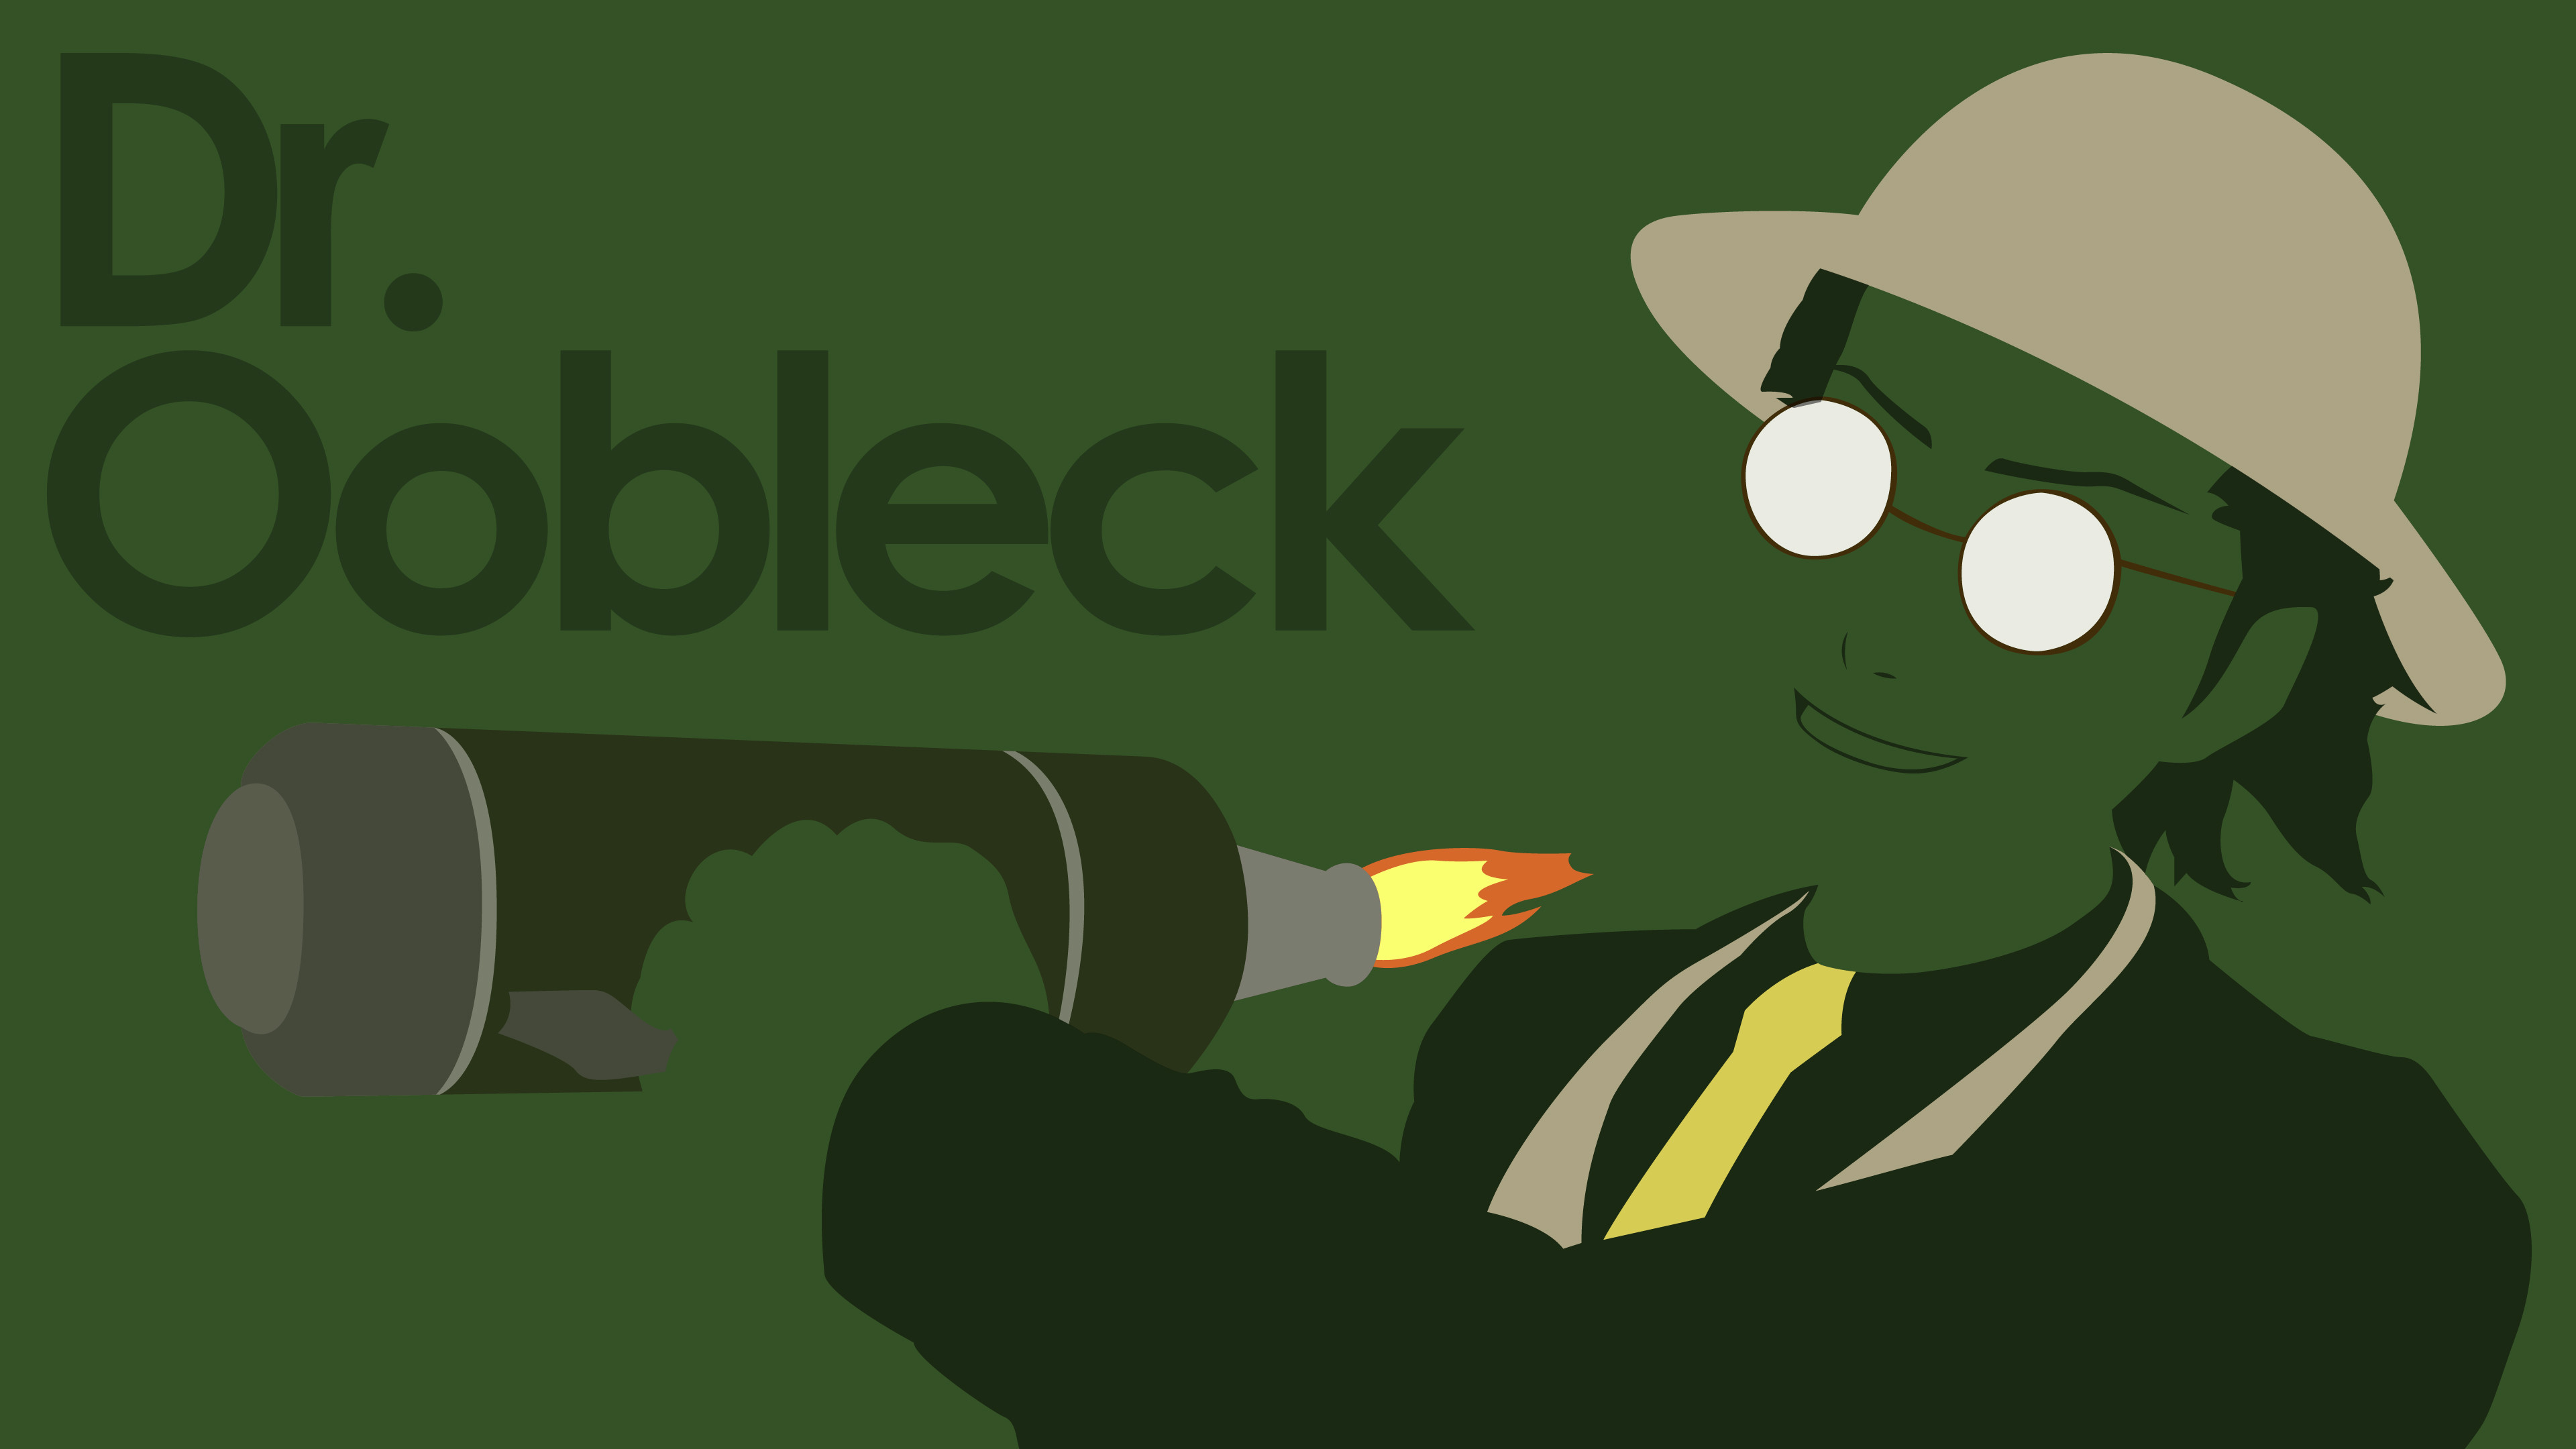 Dr.Oobleck Wallpaper by DanTherrien101 Dr.Oobleck Wallpaper by  DanTherrien101